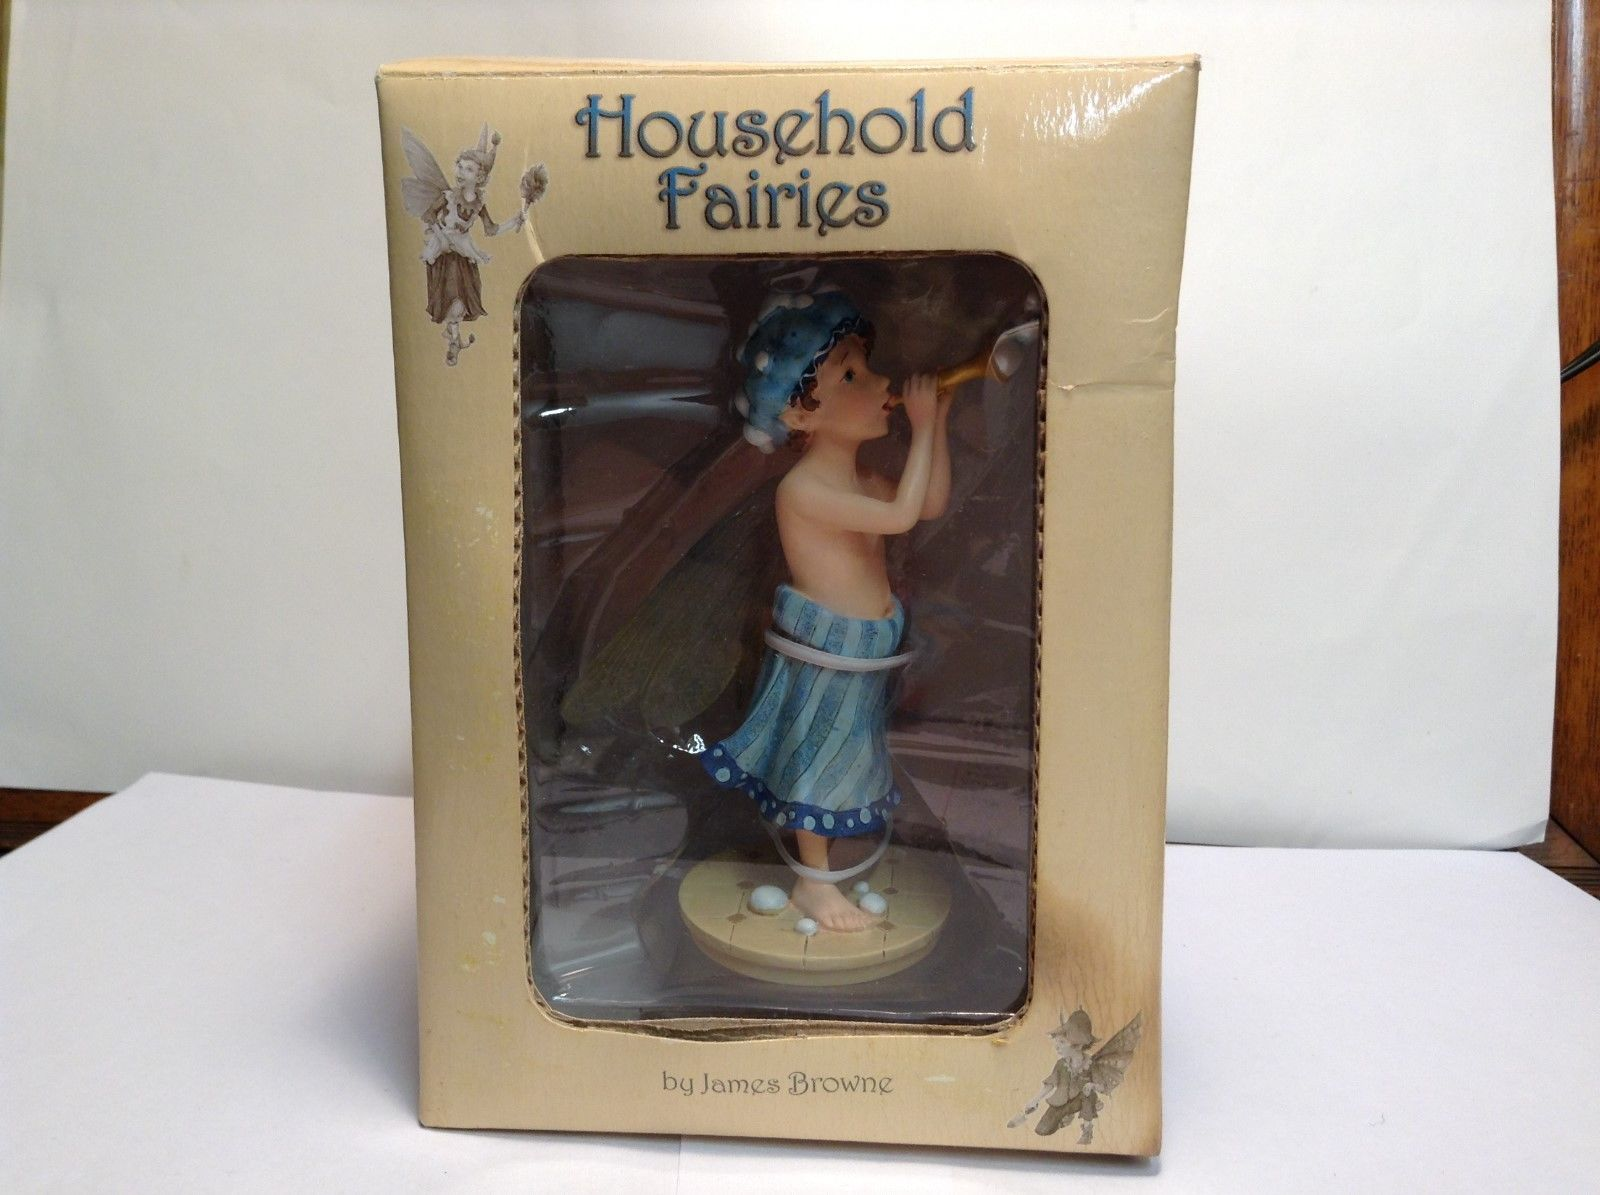 Household Fairies Bubble Bath Boy Figurine by James Browne